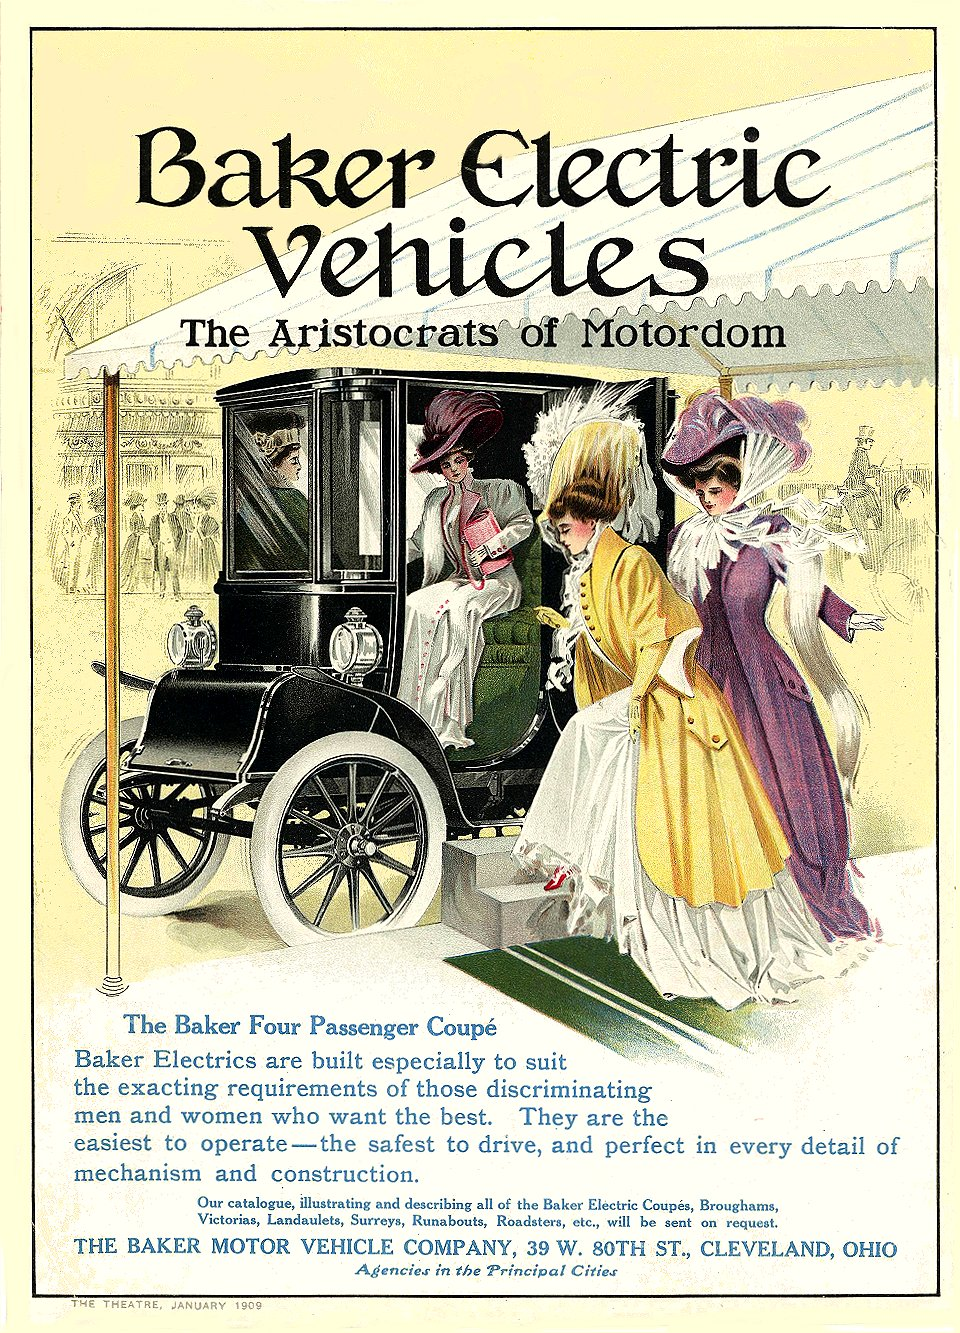 1909 1 BAKER Electric Baker Electric Vehicles The Aristocrats of Motordom THE BAKER MOTOR VEHICLE COPANY Cleveland, OHIO THE THEATRE MAGAZINE ADVERTISER January 1909 9.5″x13.25